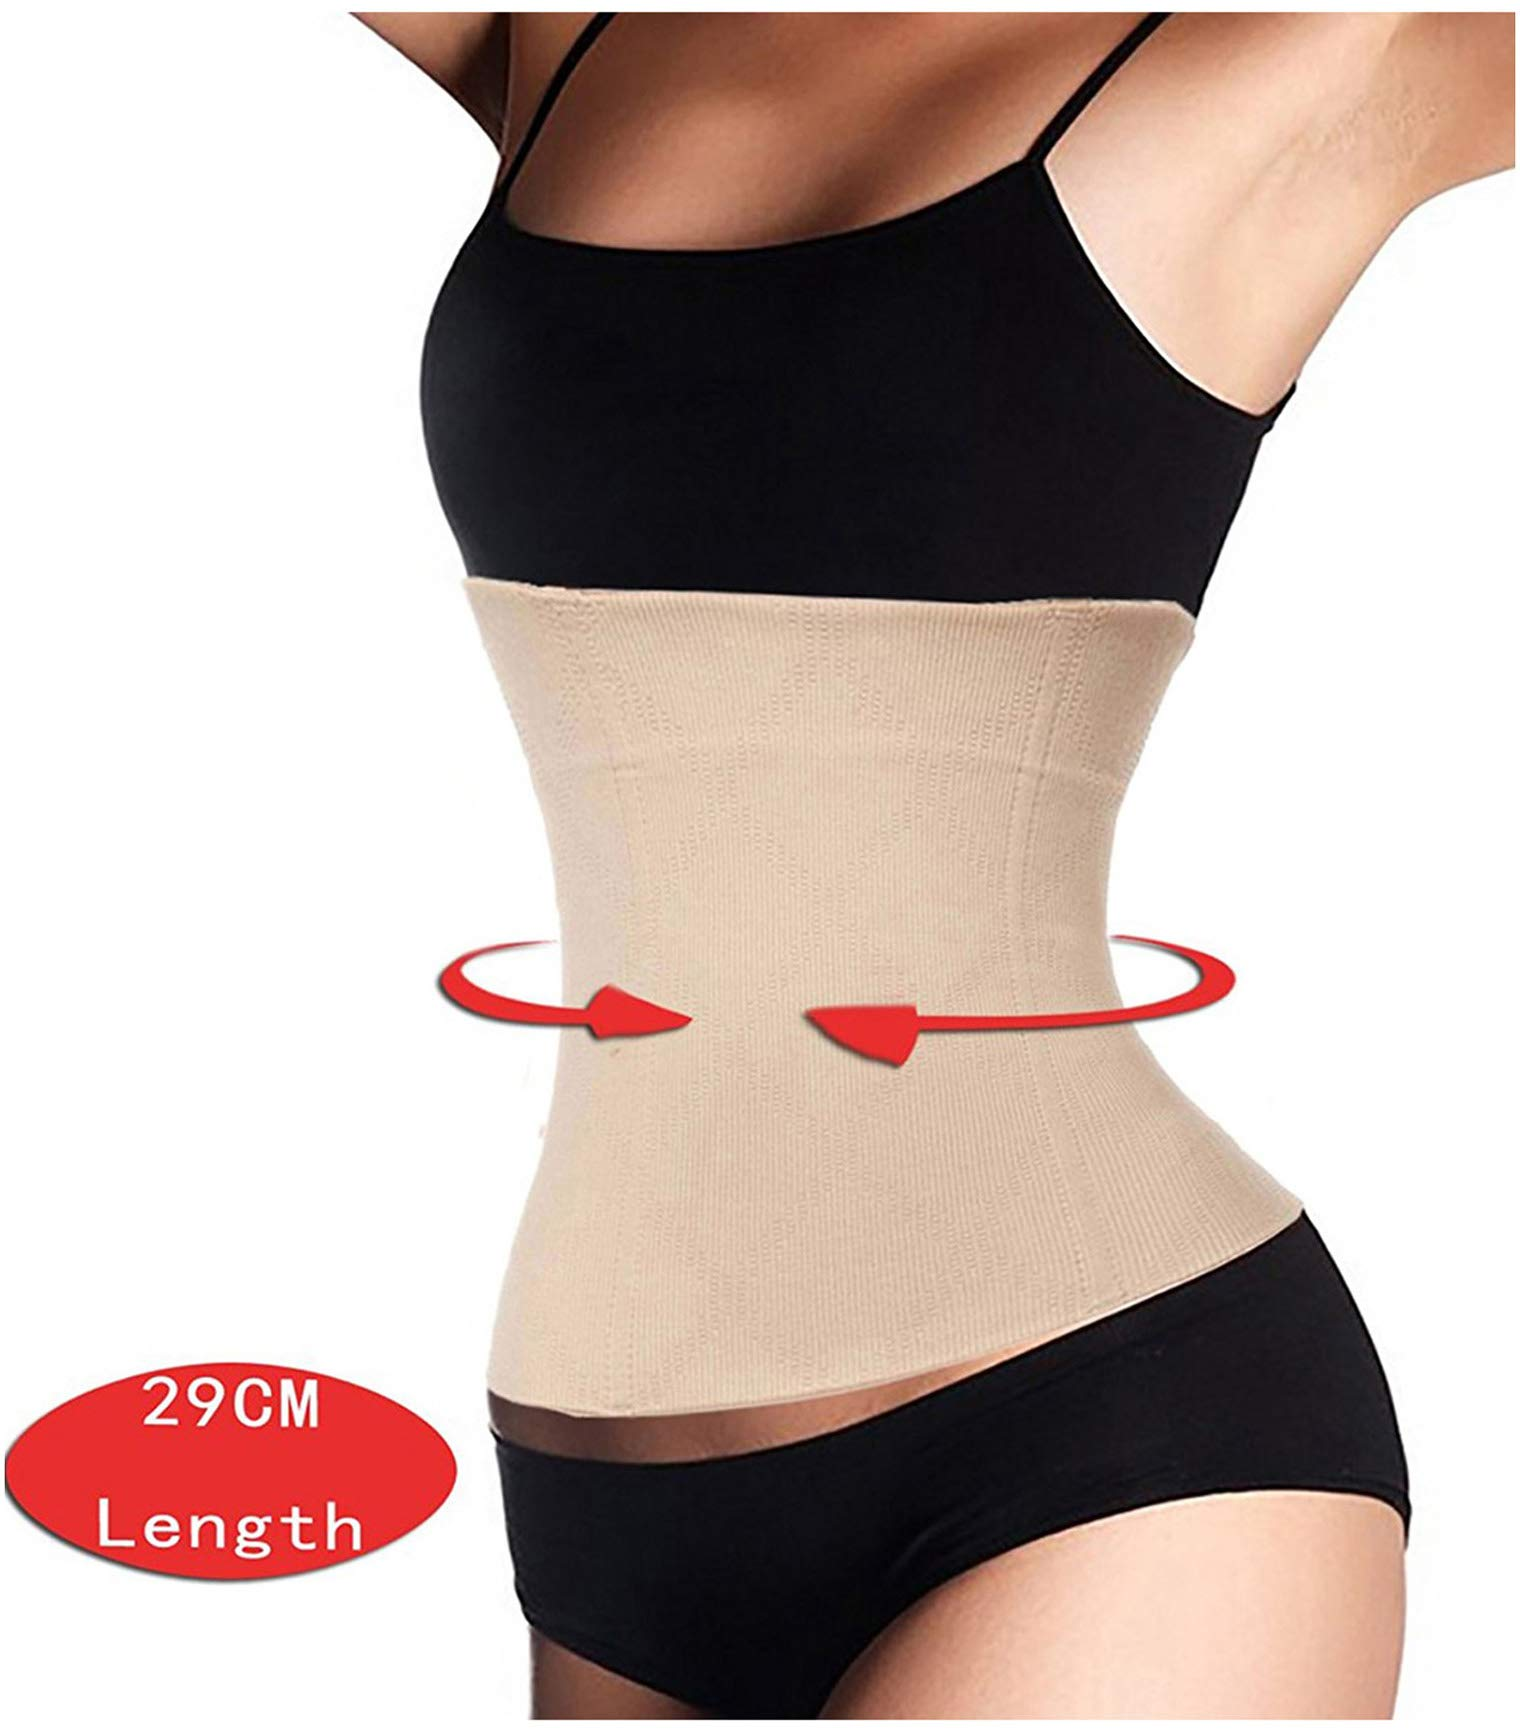 LODAY 2 in 1 Postpartum Recovery Belt,Body Wraps Works for Tighten Loose Skin